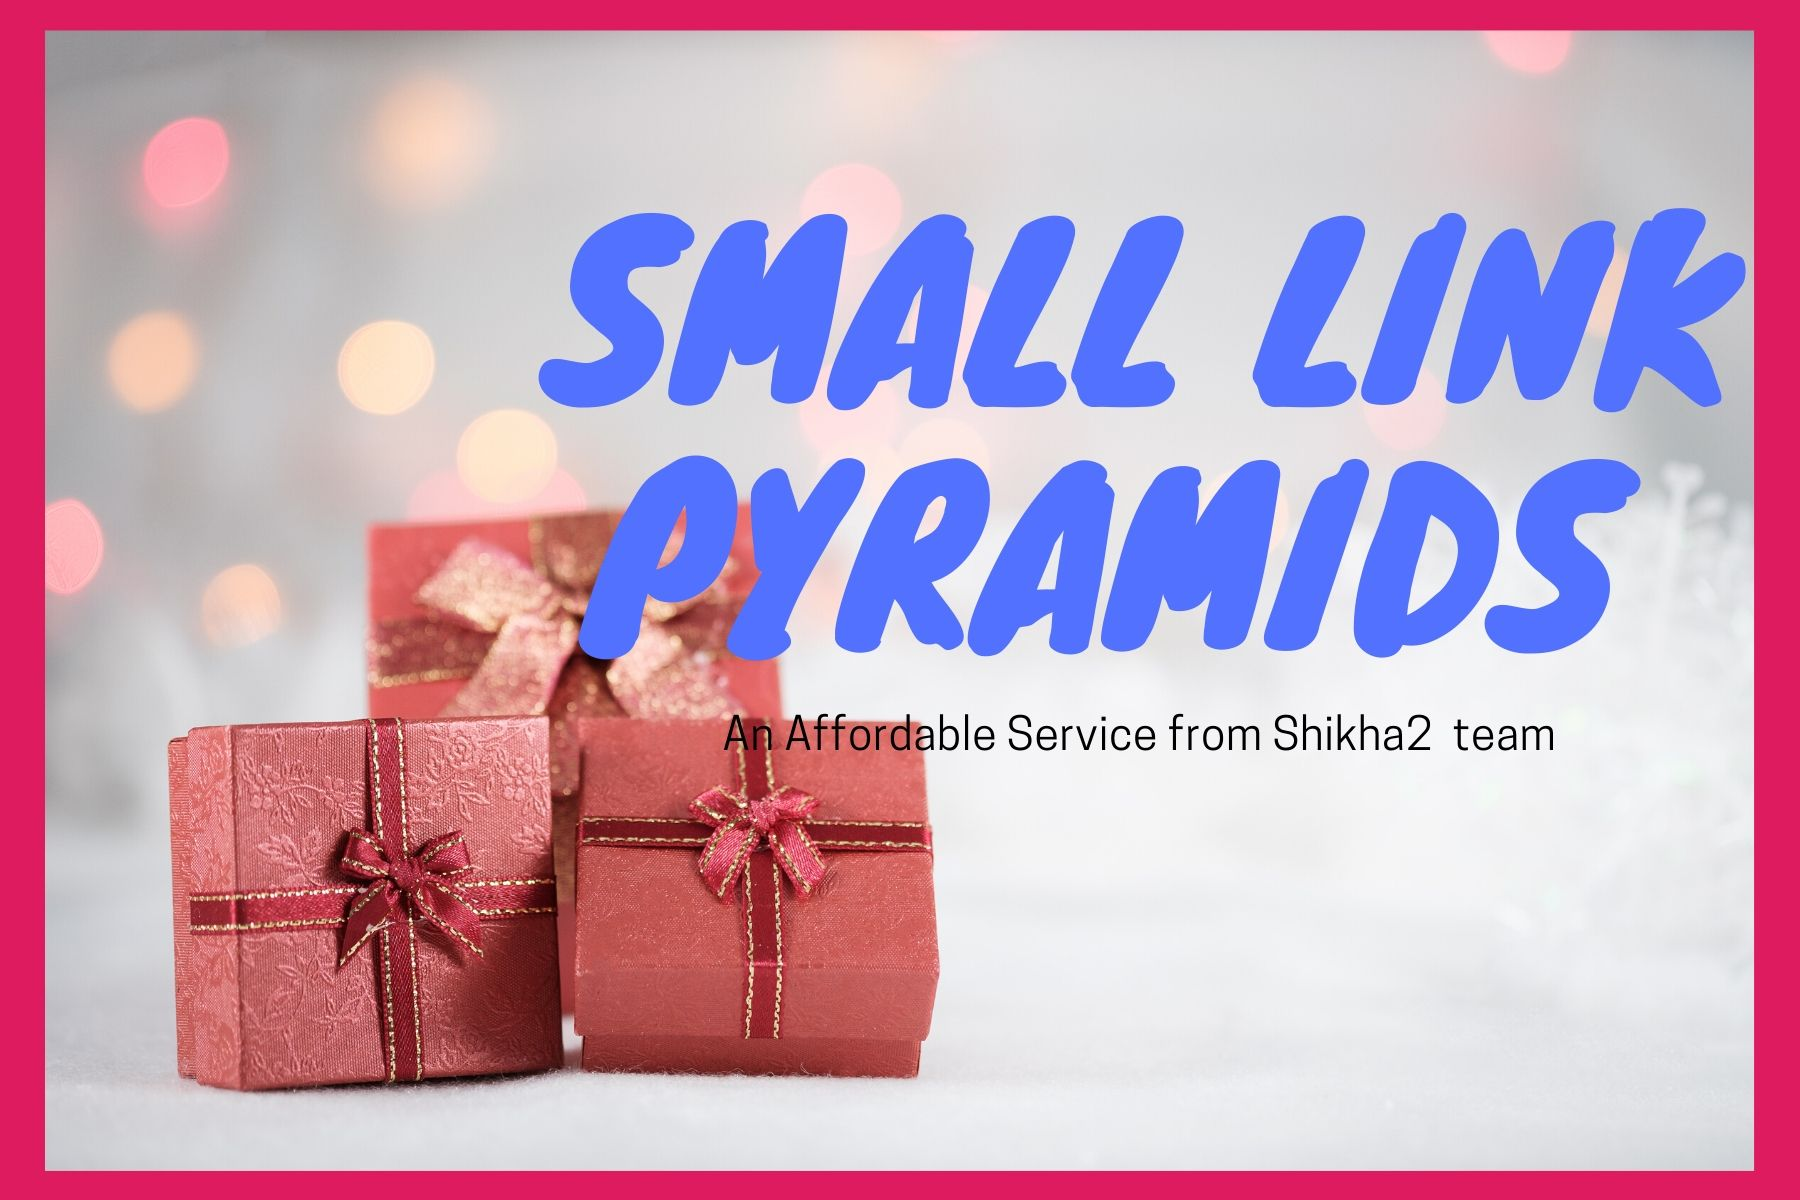 Powerful Small SEO Links Pyramid 2019 for a Little bit Boost Your Search Engine Ranking